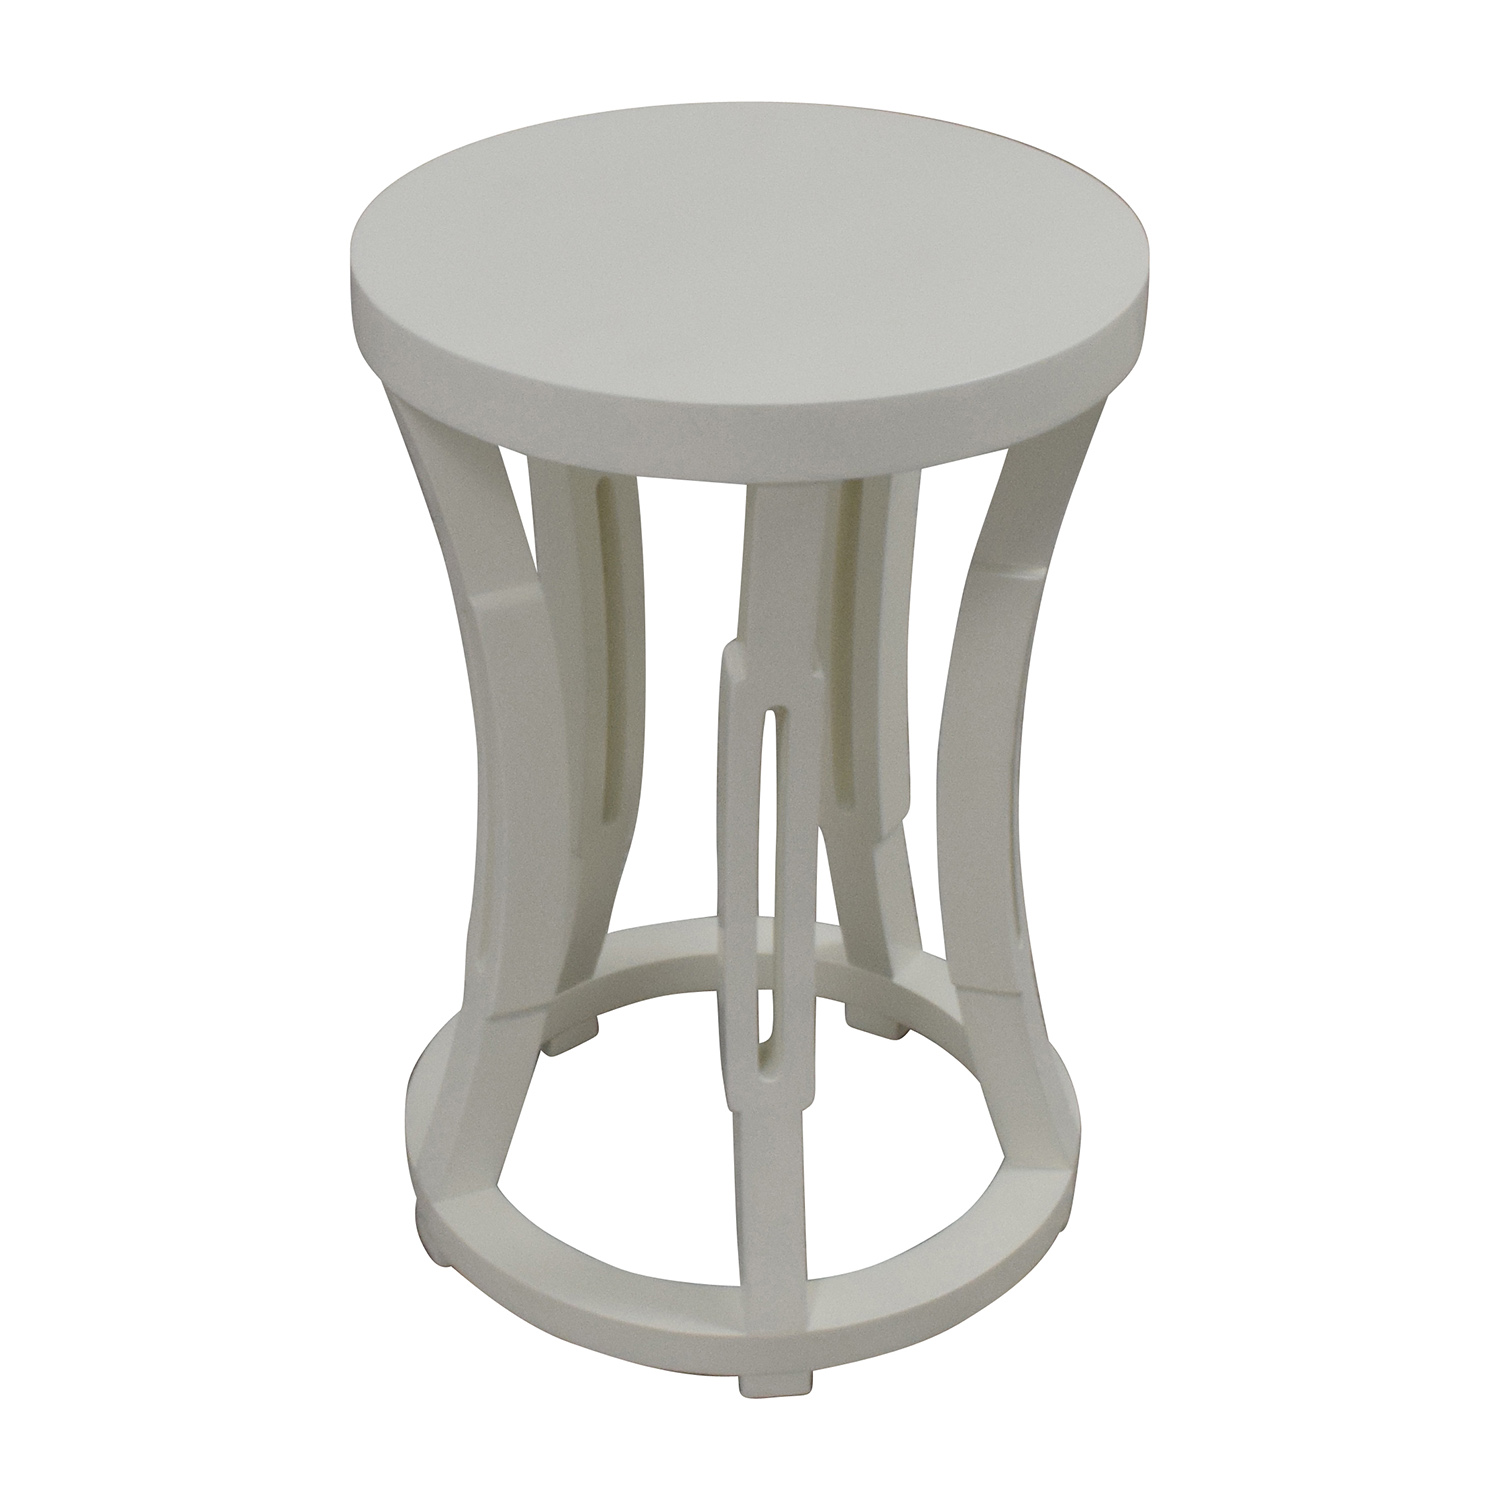 Bungalow 5 Hour Glass Stool Side Table or Stool / End Tables